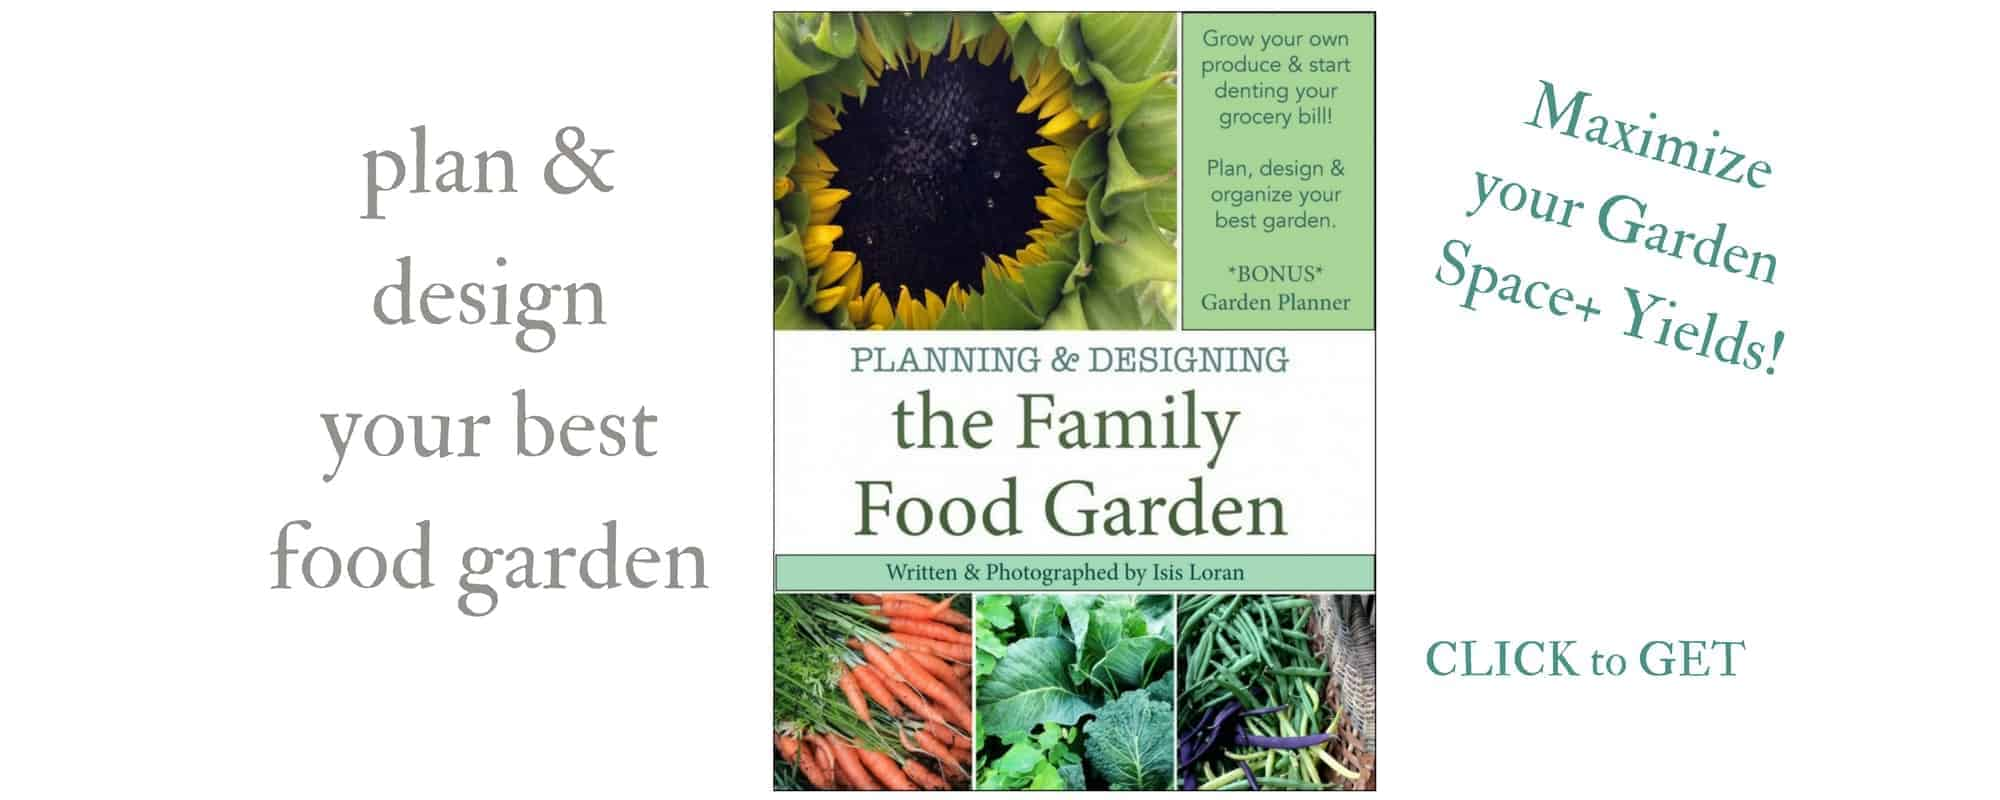 food salads, food herbs, food pests, office plans, food forest plans, food winter, xeriscape plans, playground plans, food business plans, food weather, food trees, food lesson plans, backyard plans, food blogging, permaculture plans, food gardening, food soup, on food garden design plan